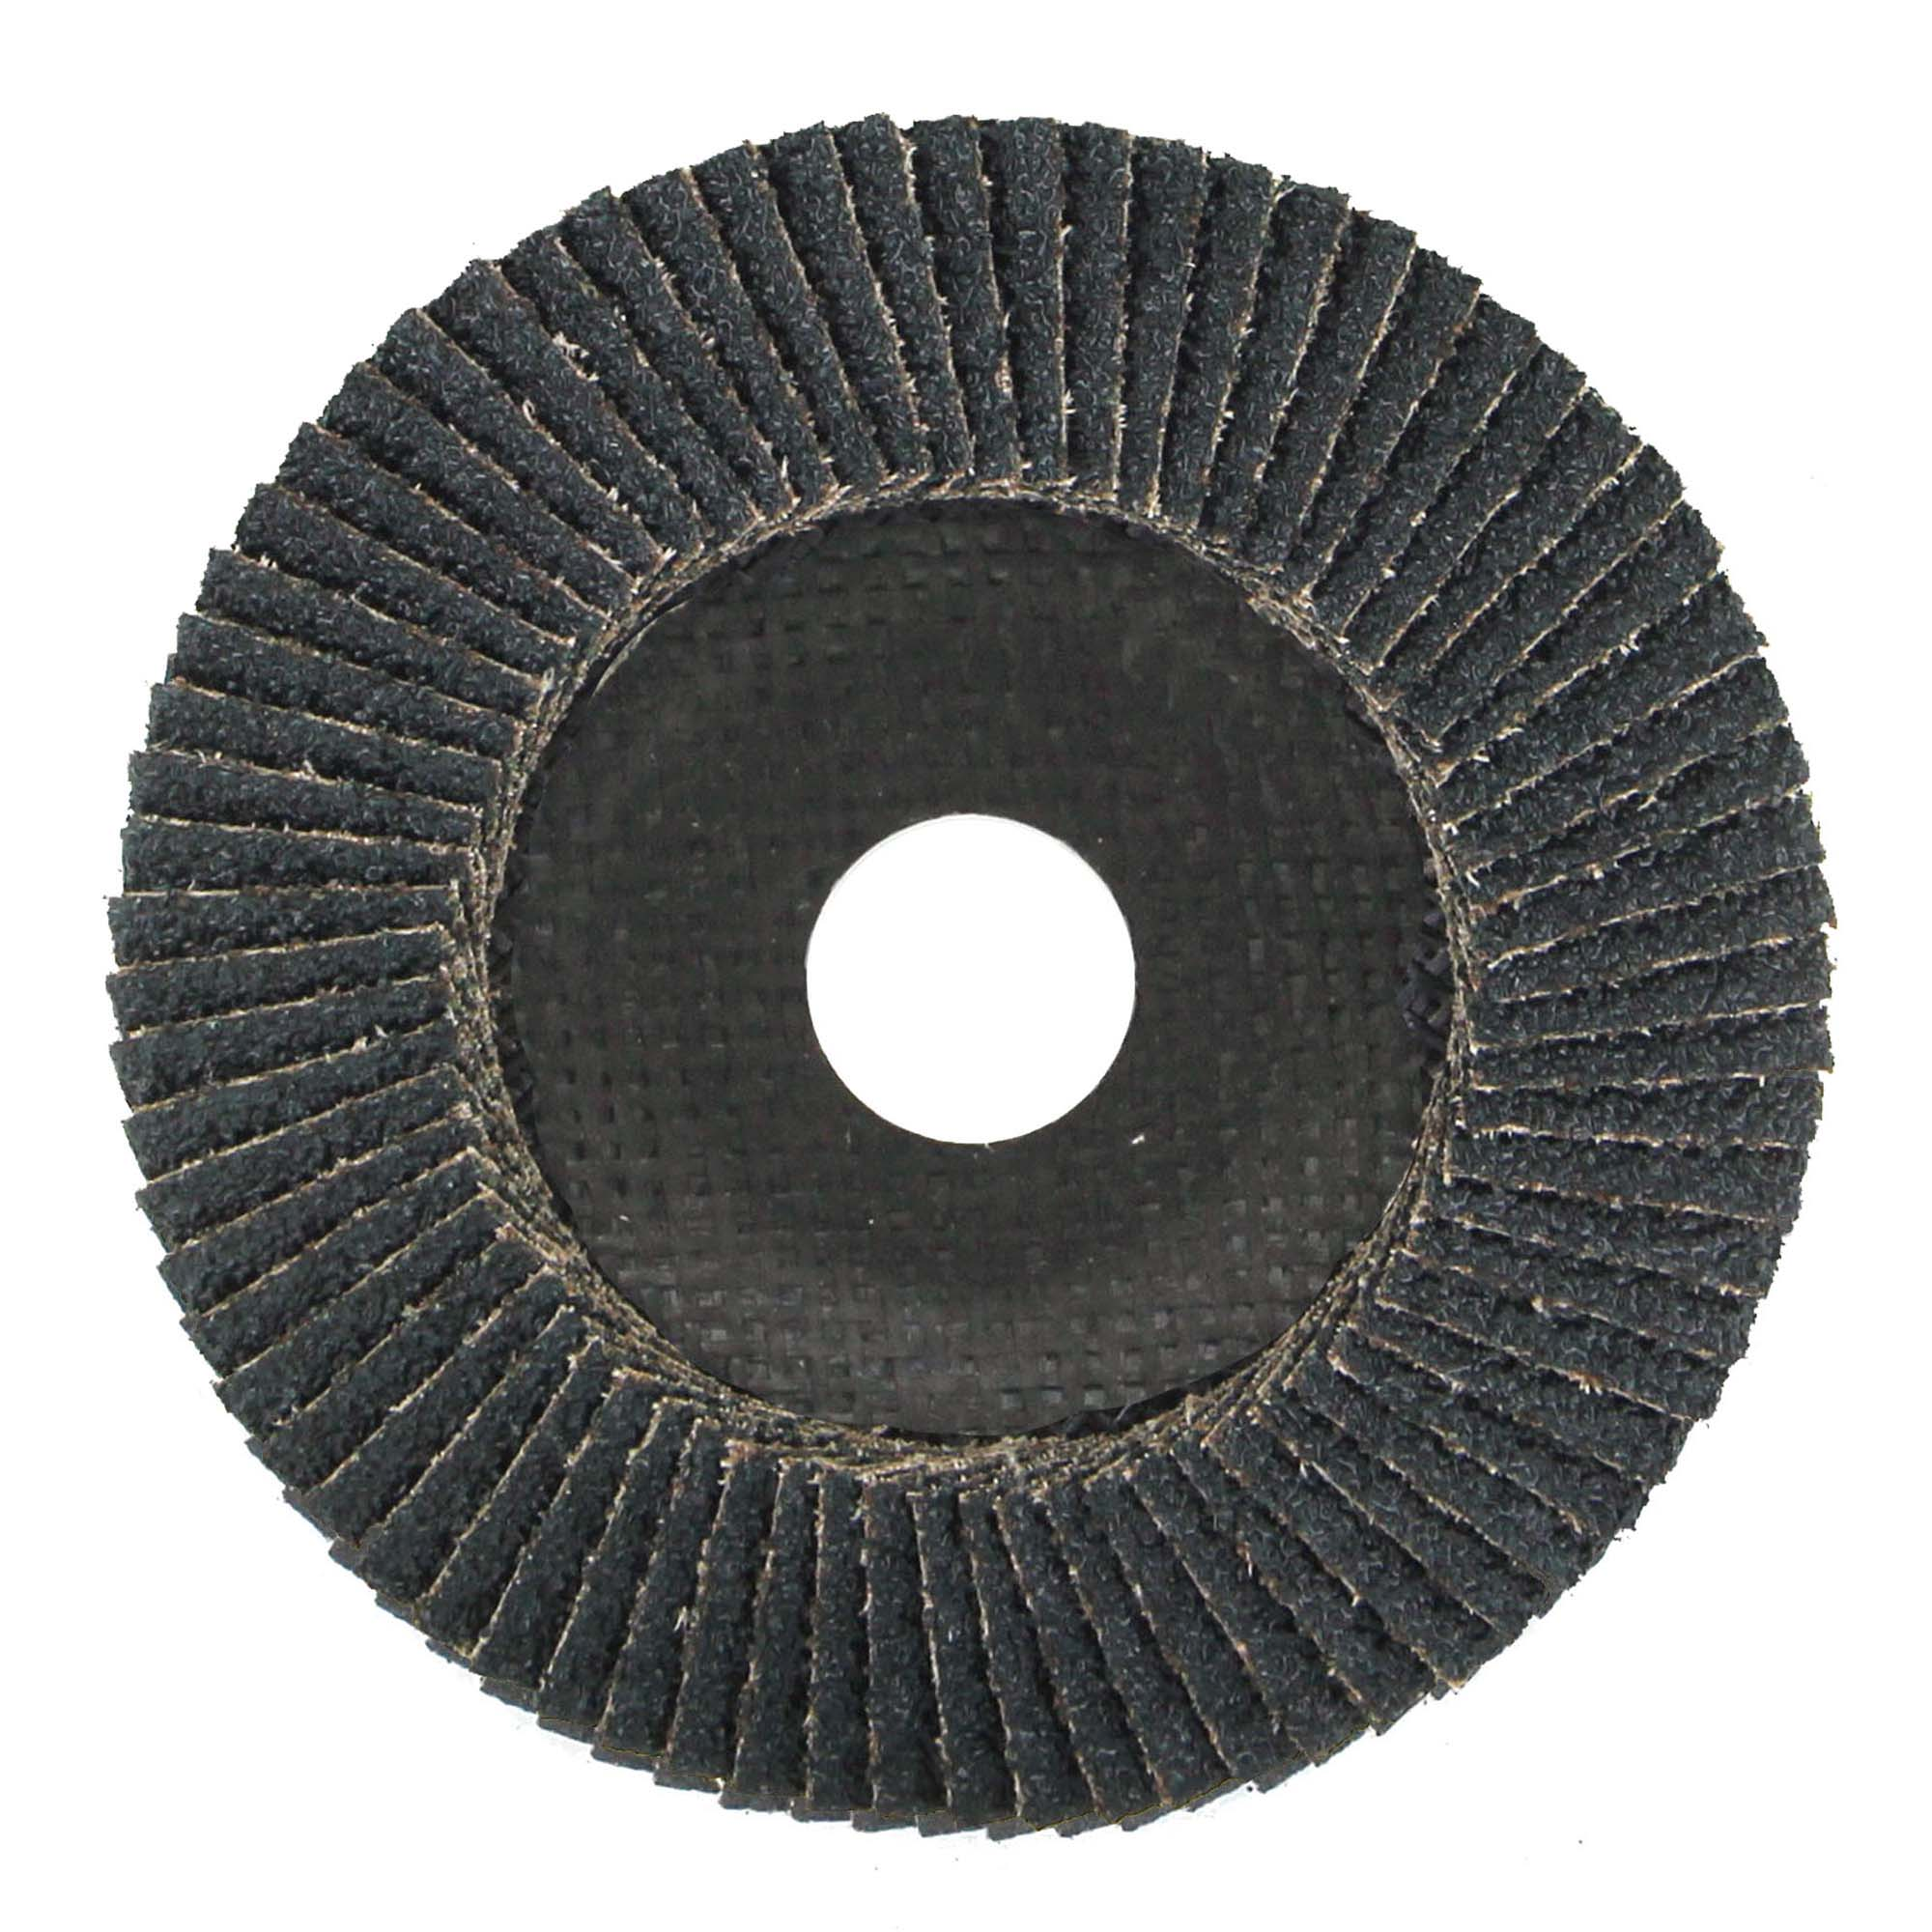 "High Density 20Pack 4.5/""x 7//8/"" Zirconia Flap Disc Grinding Wheel Free Shipping"